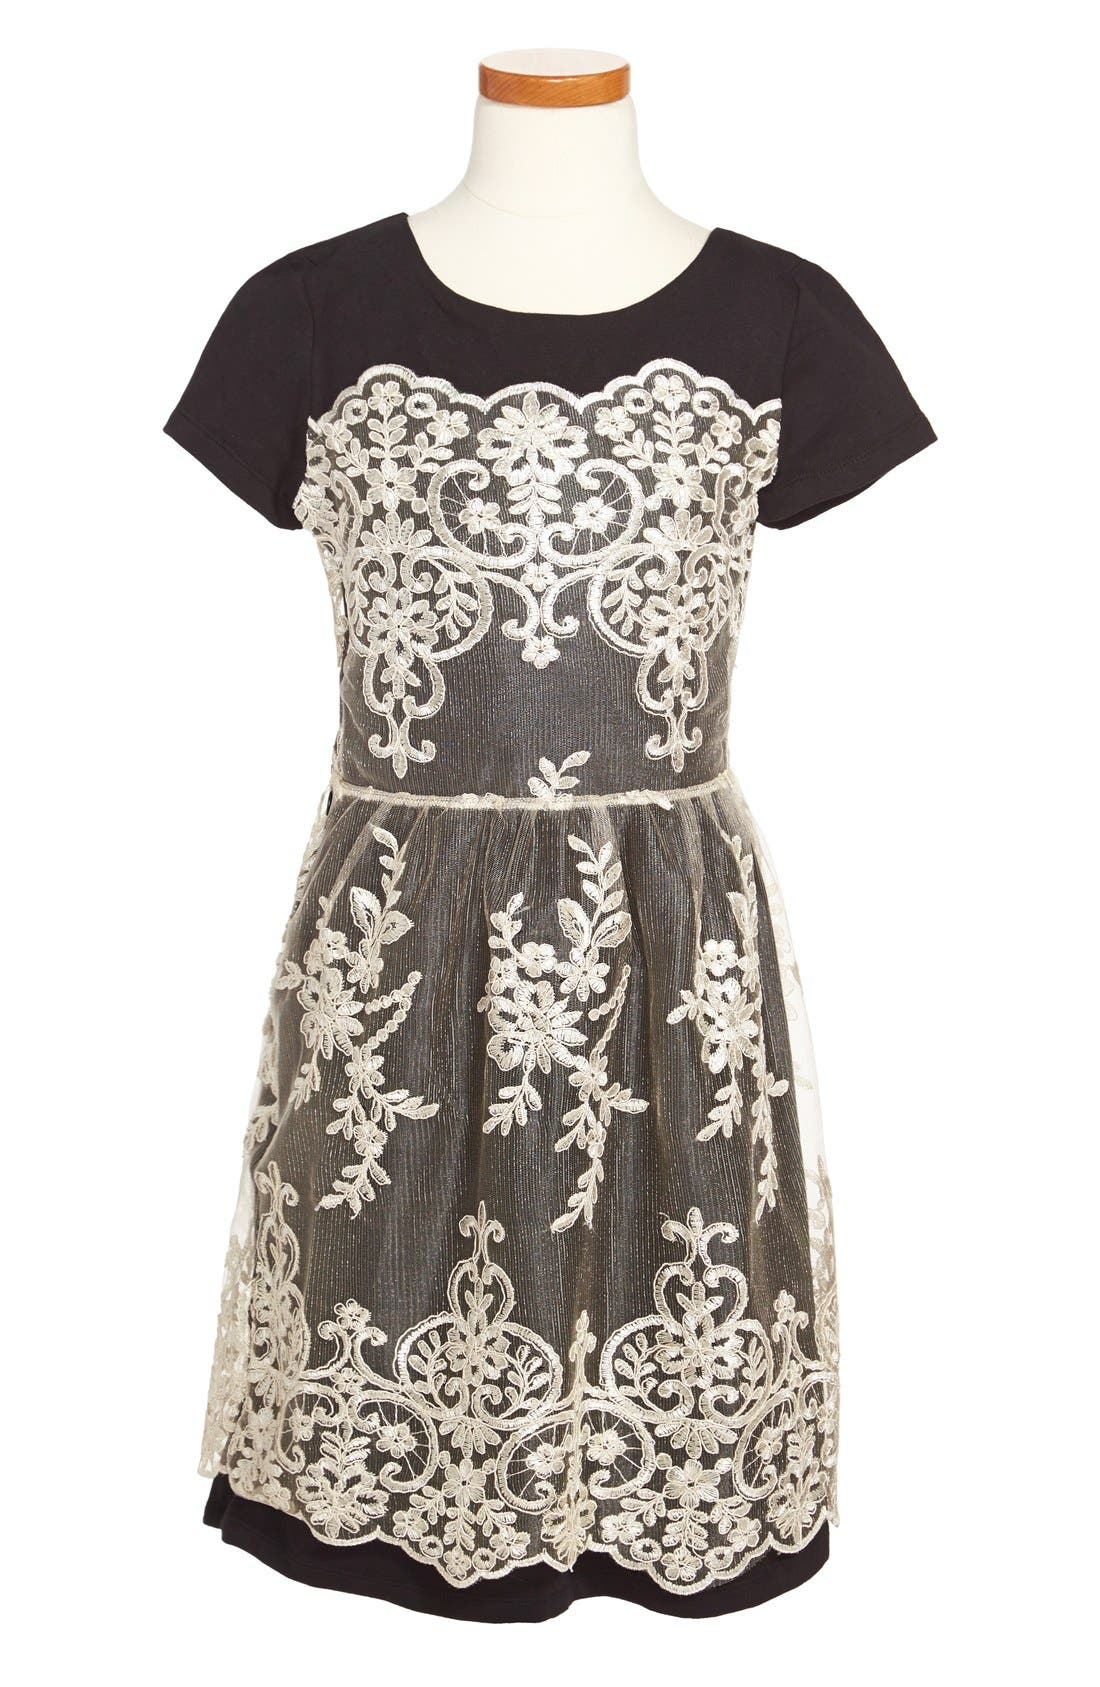 Alternate Image 1 Selected - Fiveloaves Twofish Jersey Knit Dress with Lace (Big Girls)